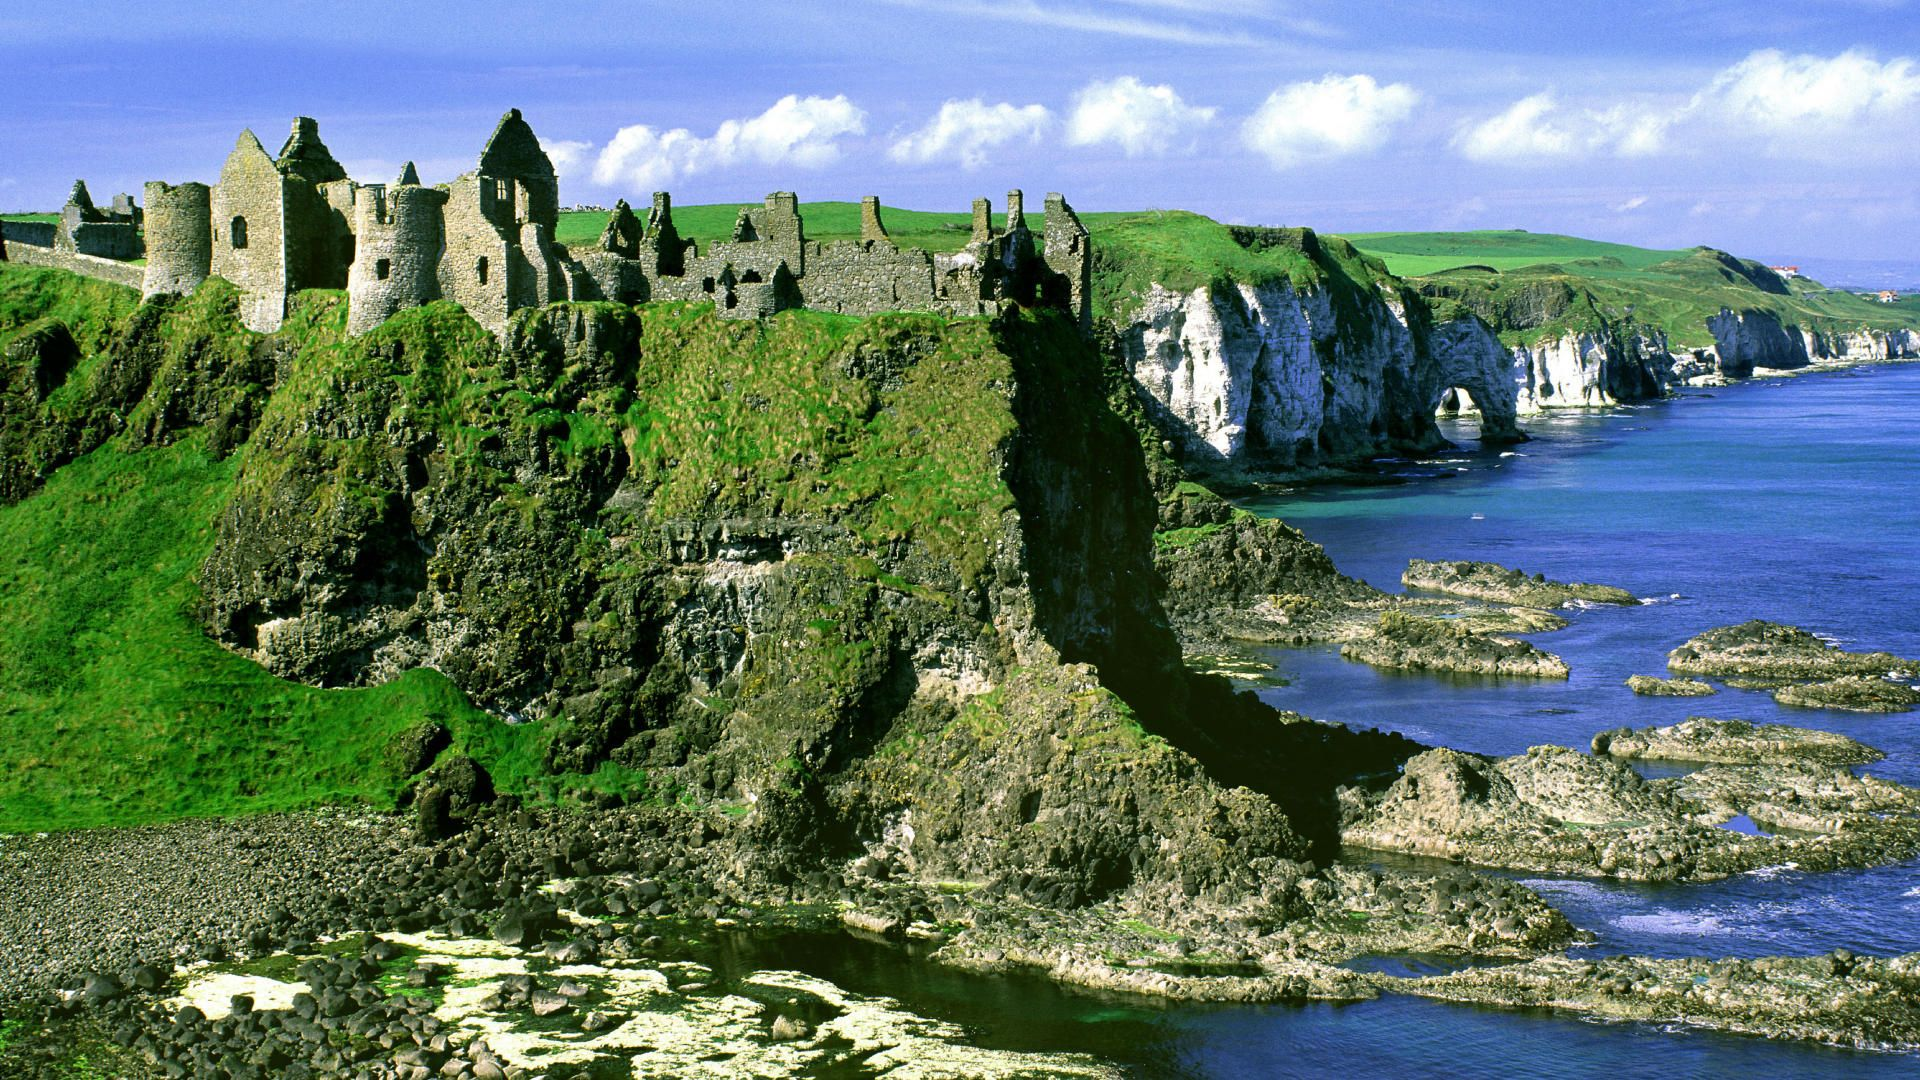 Ruined Castle on a Rock Face by the Sea